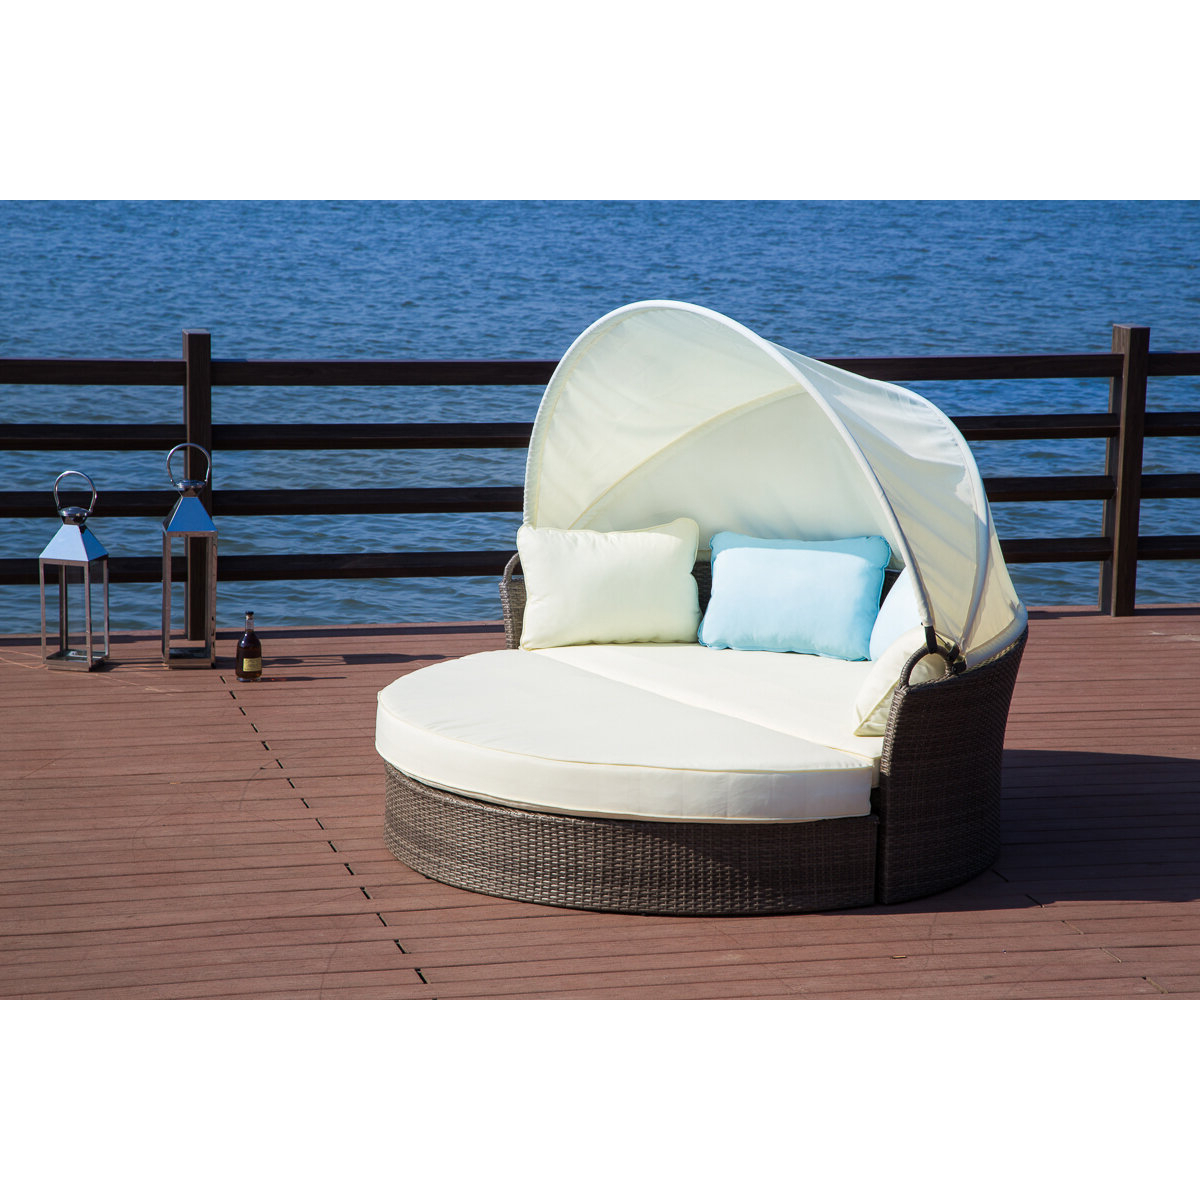 Widely Used Harlow Patio Daybed With Cushions For Behling Canopy Patio Daybeds With Cushions (View 6 of 25)